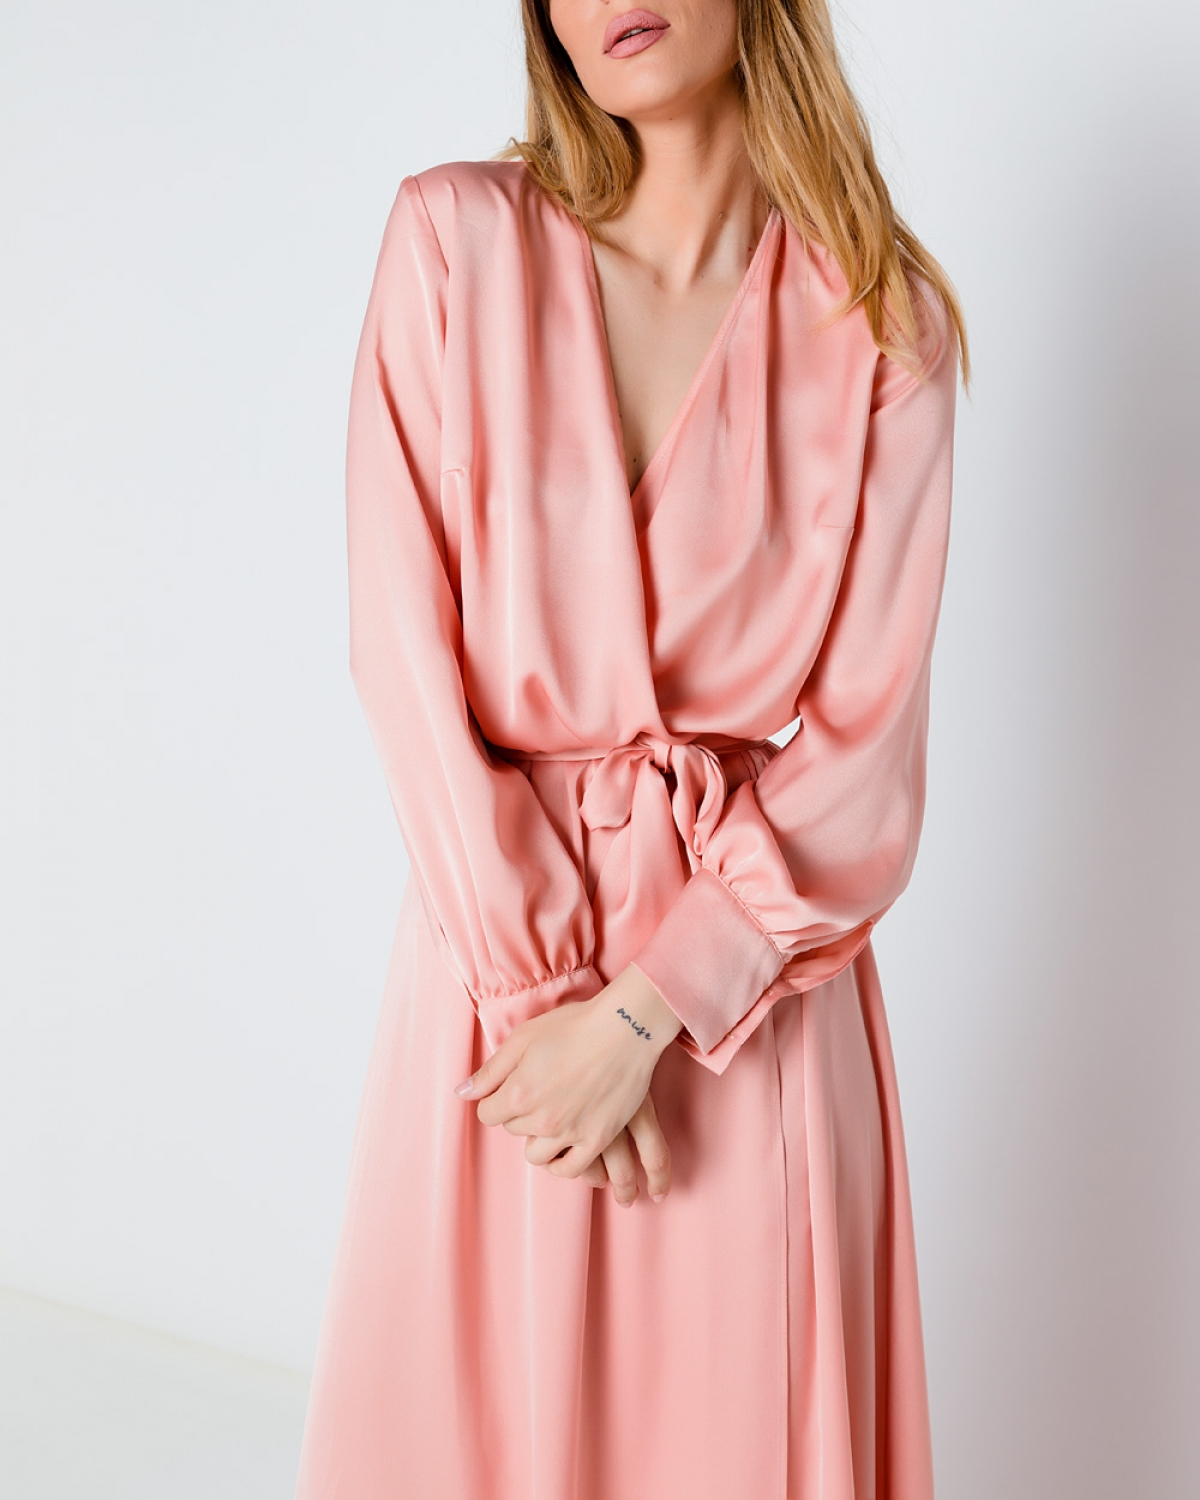 fefa4f0bda3c2 Silk Maxi Pink Wrap Dress - Fashionnoiz